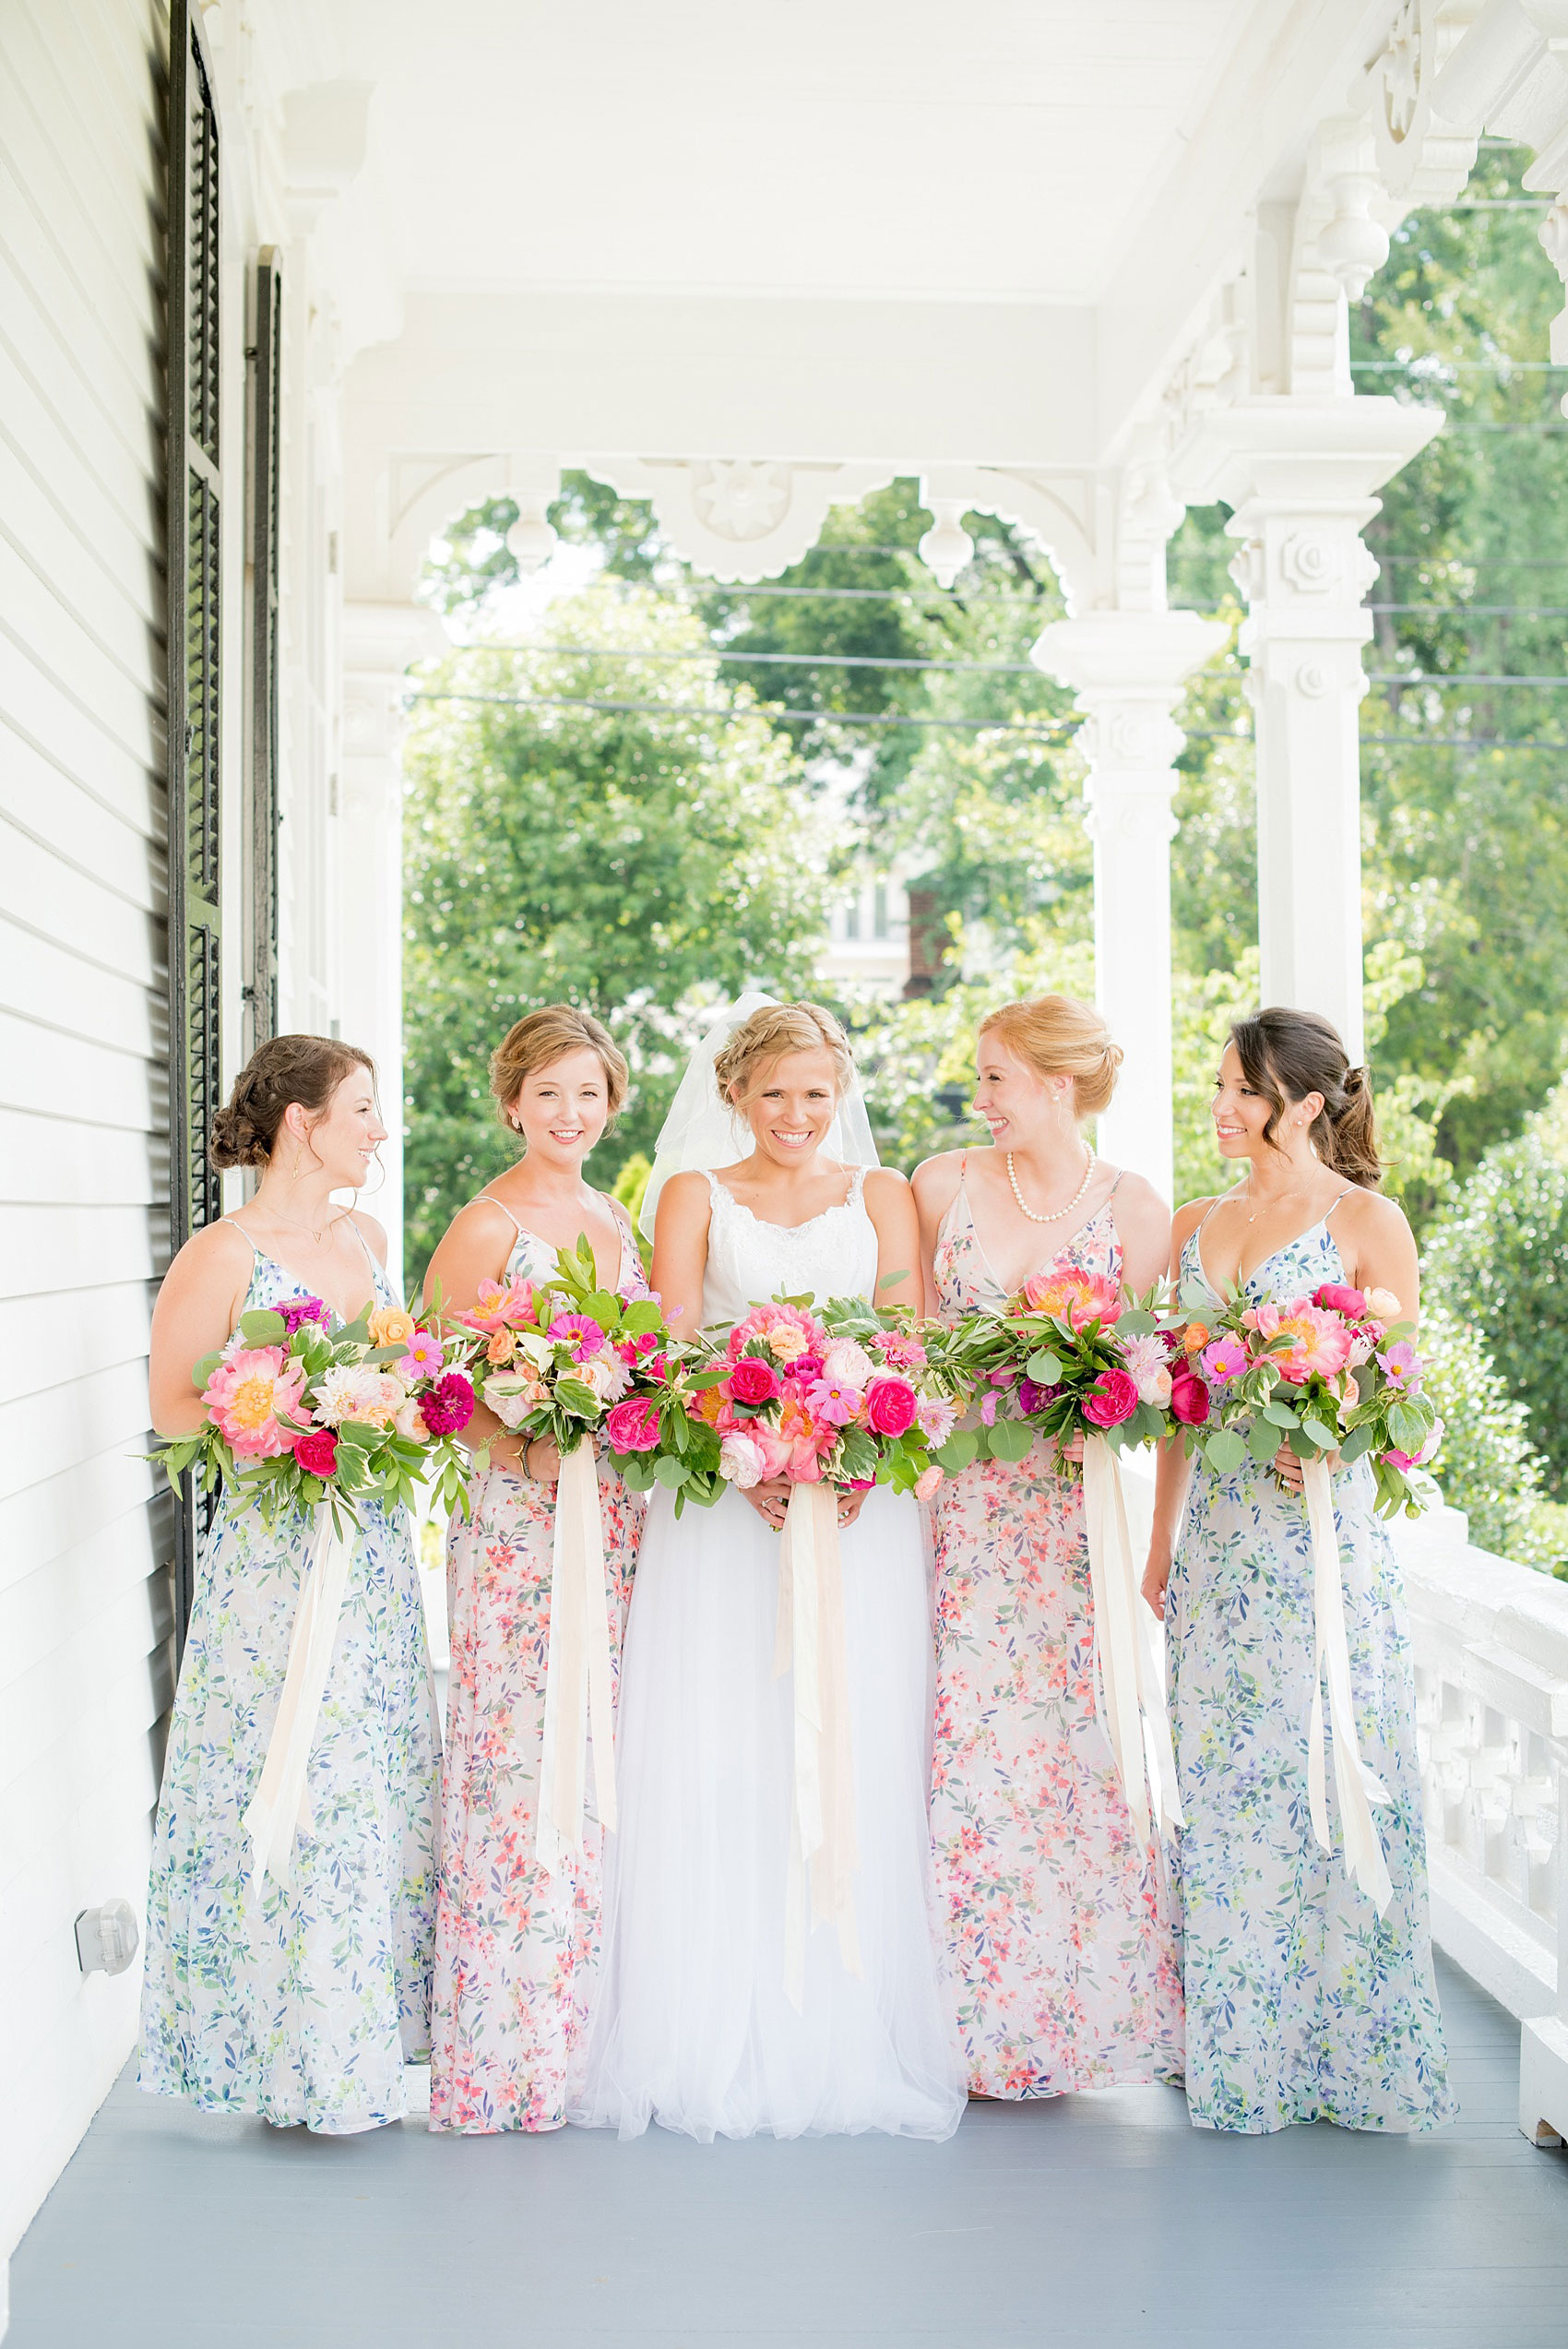 Mikkel Paige Photography wedding photos at The Merrimon-Wynne House in downtown Raleigh. Bridesmaids in floral maxi gowns with colorful pink, orange and green bouquets with peonies, eucalyptus and garden roses by Meristem Floral.